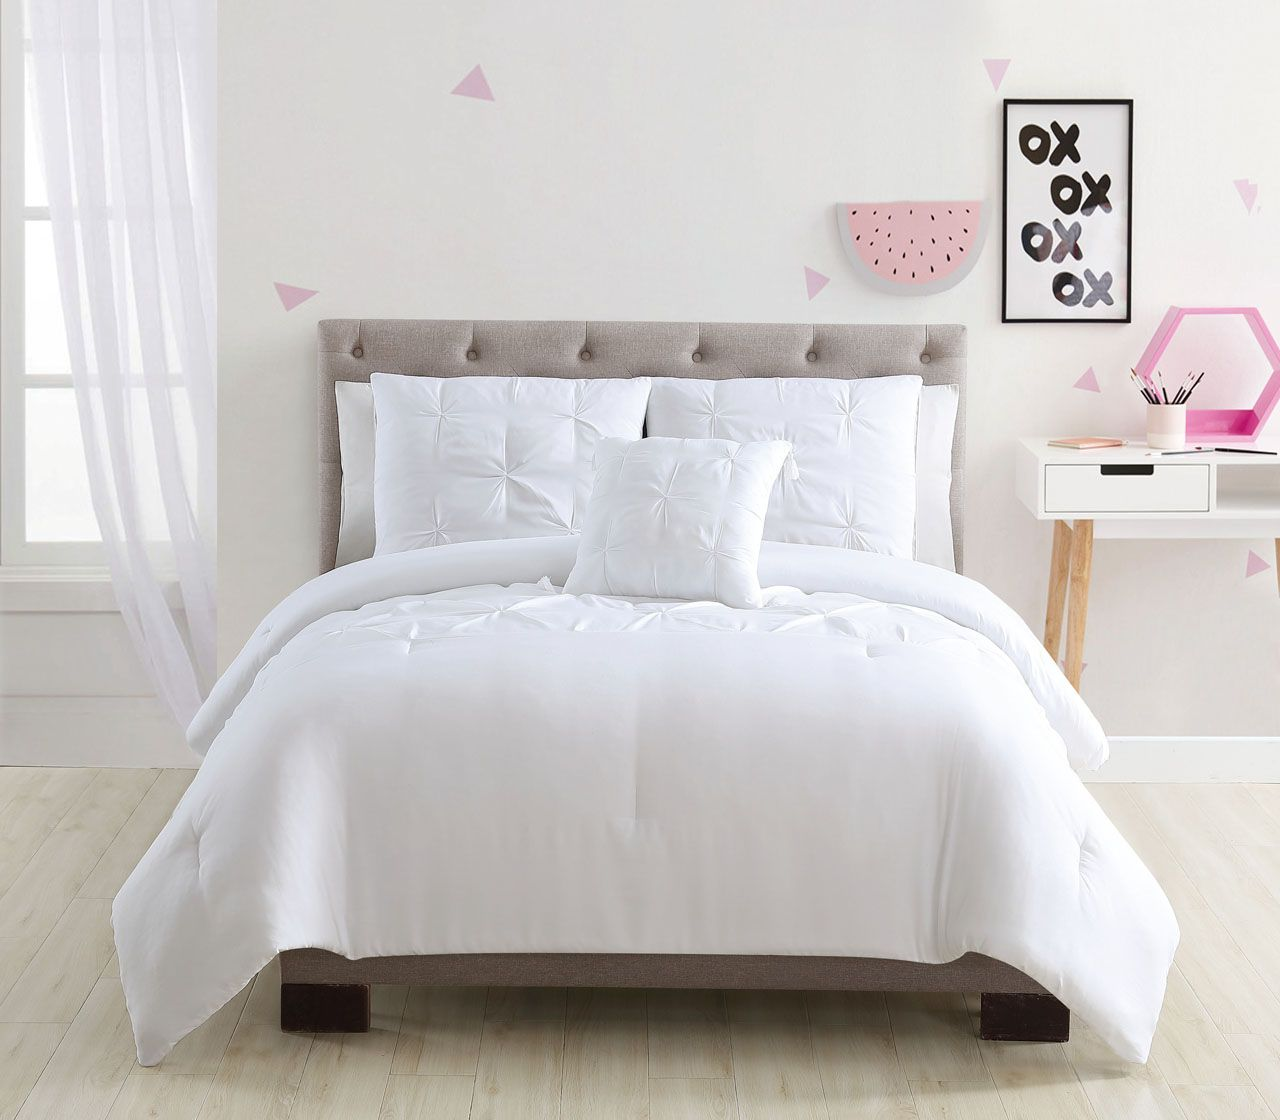 8 Piece Mia White Bed In A Bag Set